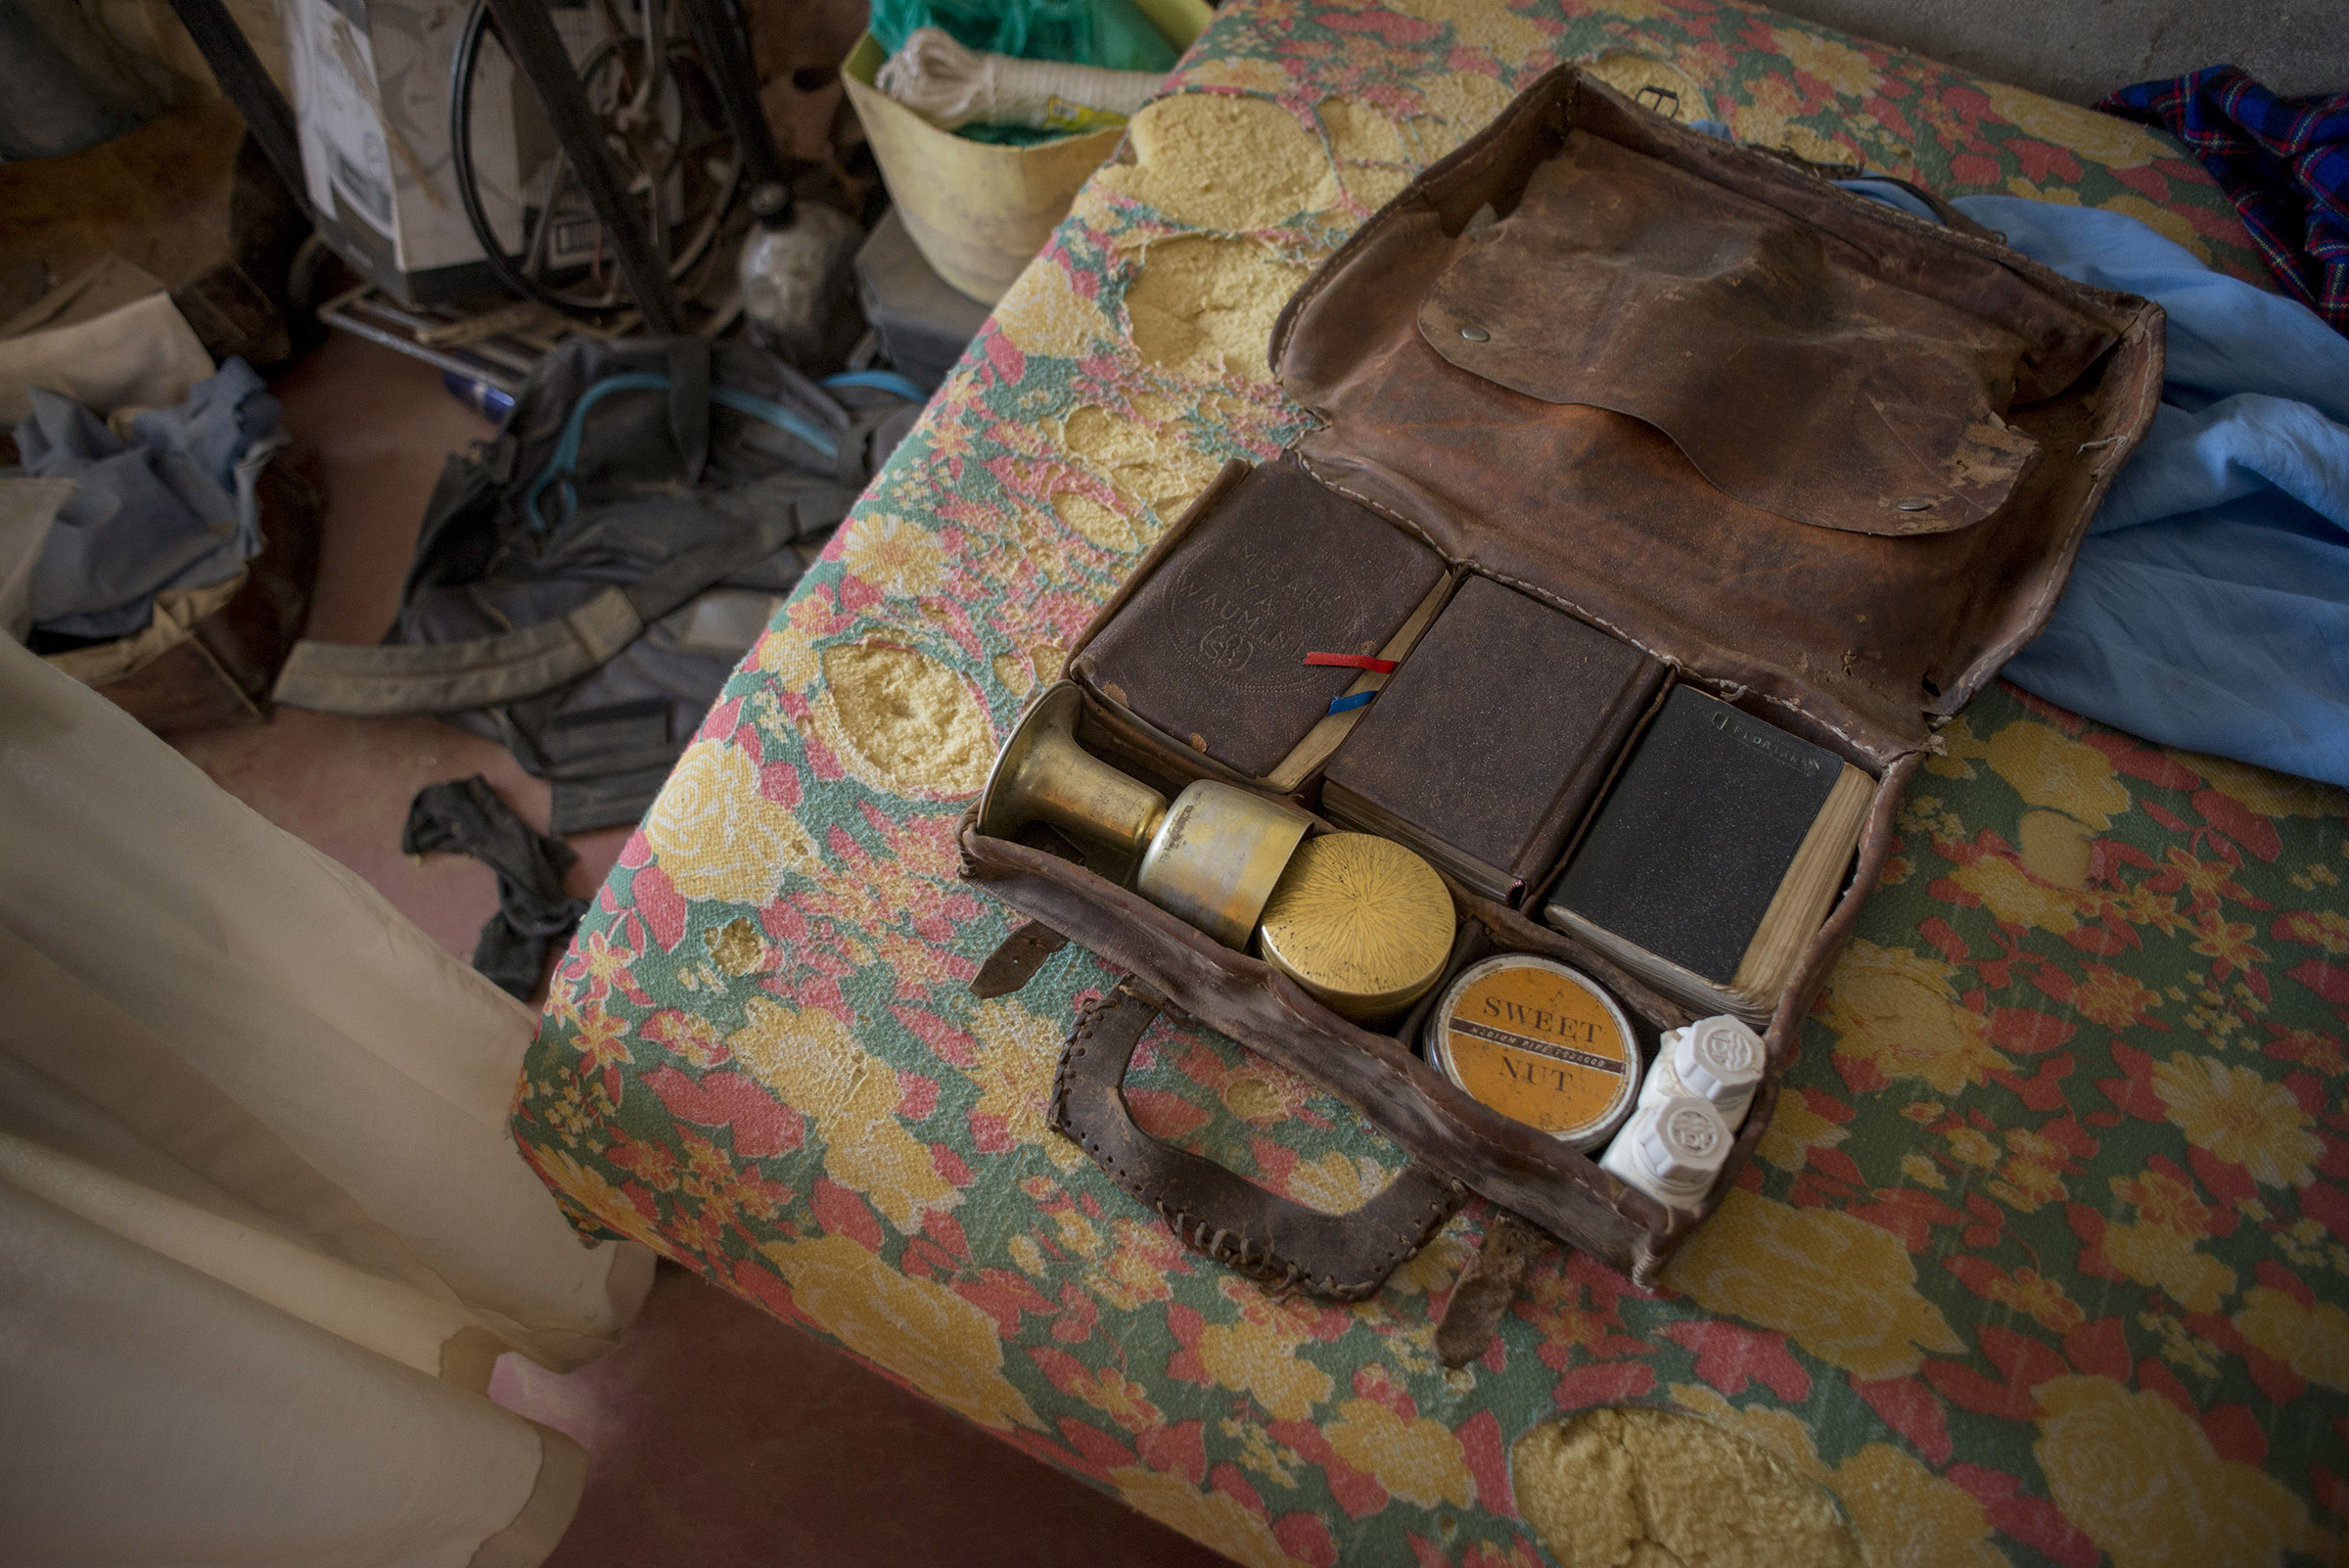 Father Florian often travels to remote areas for ministry work and always keeps a travel kit with him to carry out the sacrament of the Eucharist. (Christena Dowsett/The GroundTruth Project)